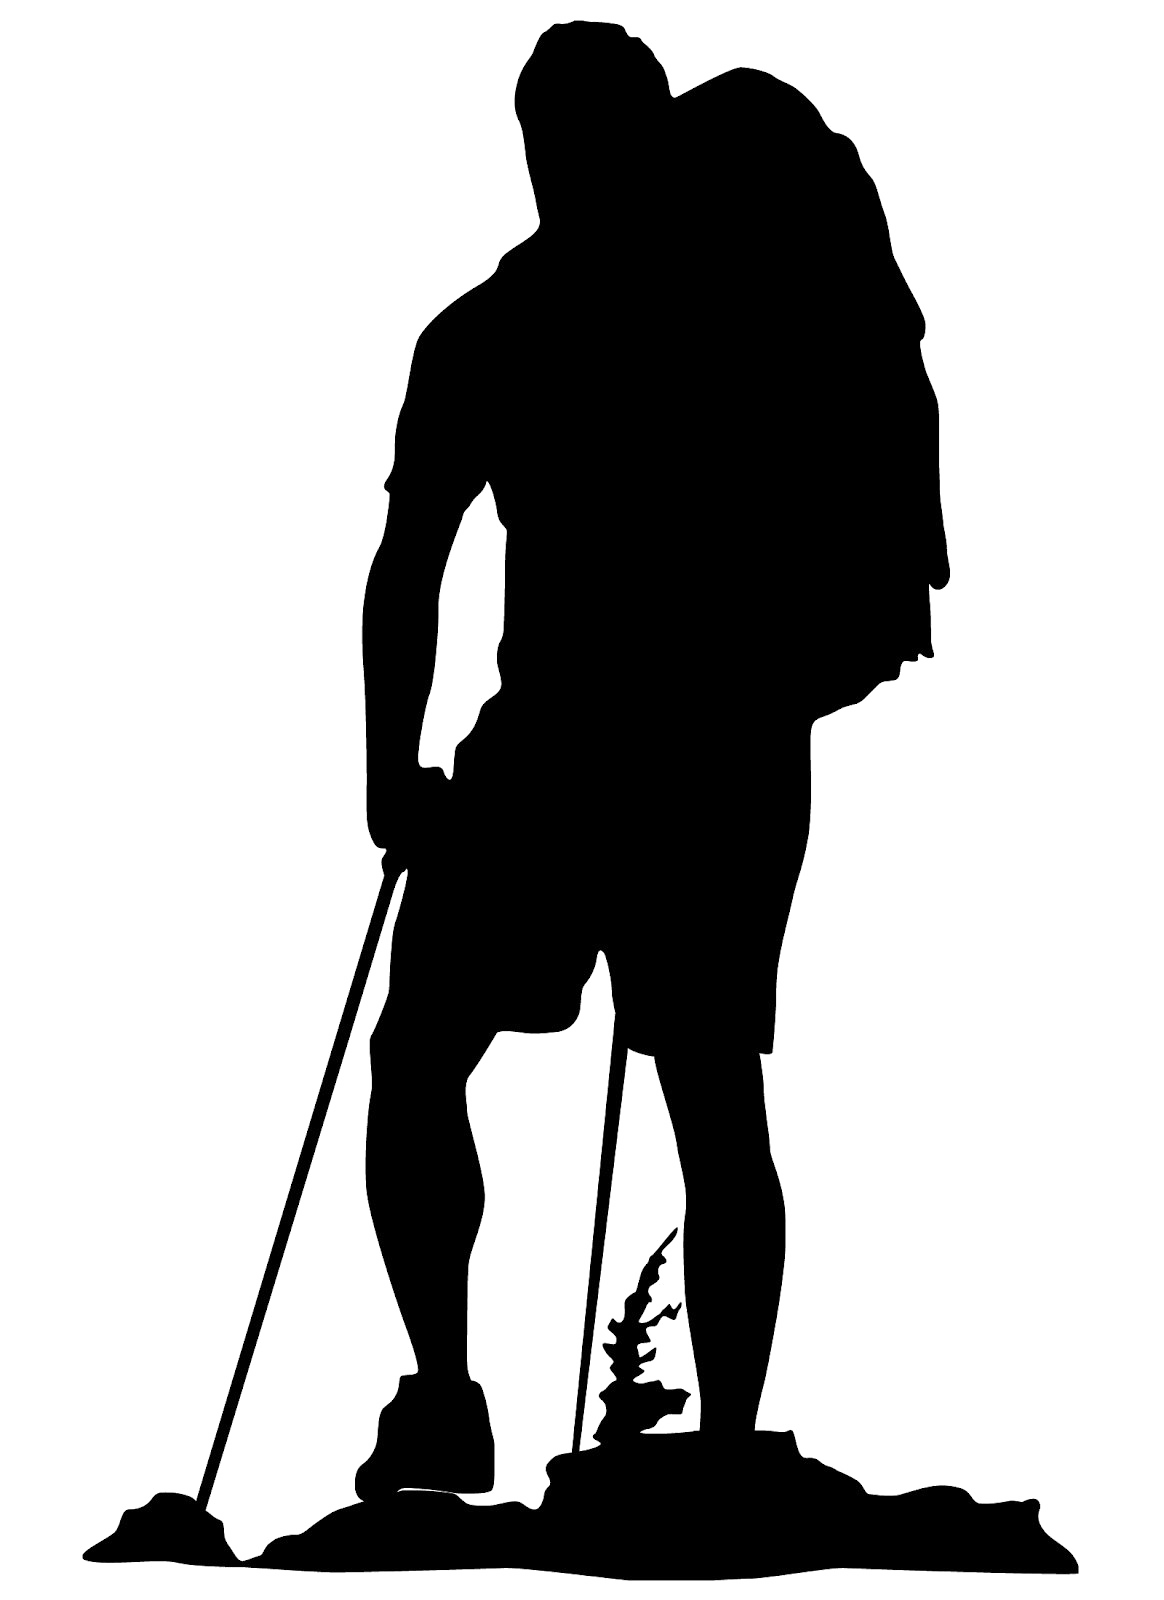 Clip art Hiking Backpacking Vector graphics Silhouette.